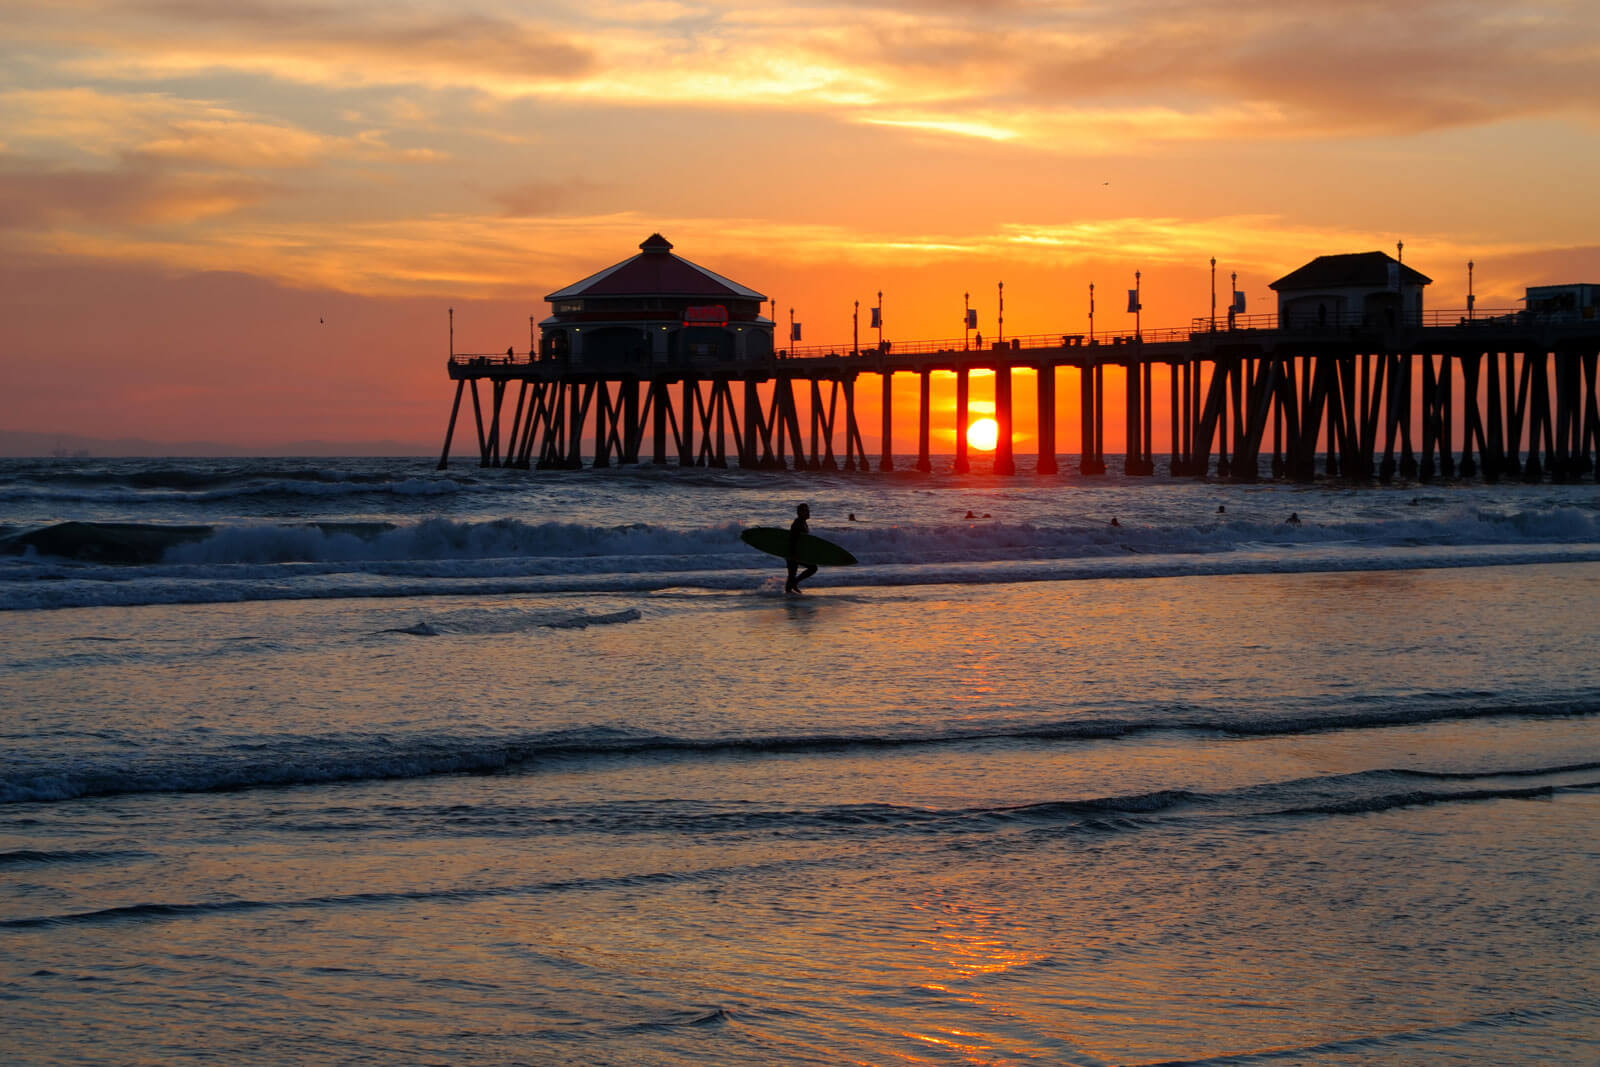 Enjoy Surfing or Relaxing at the Beach near Boardwalk by Windsor, Huntington Beach, 92647